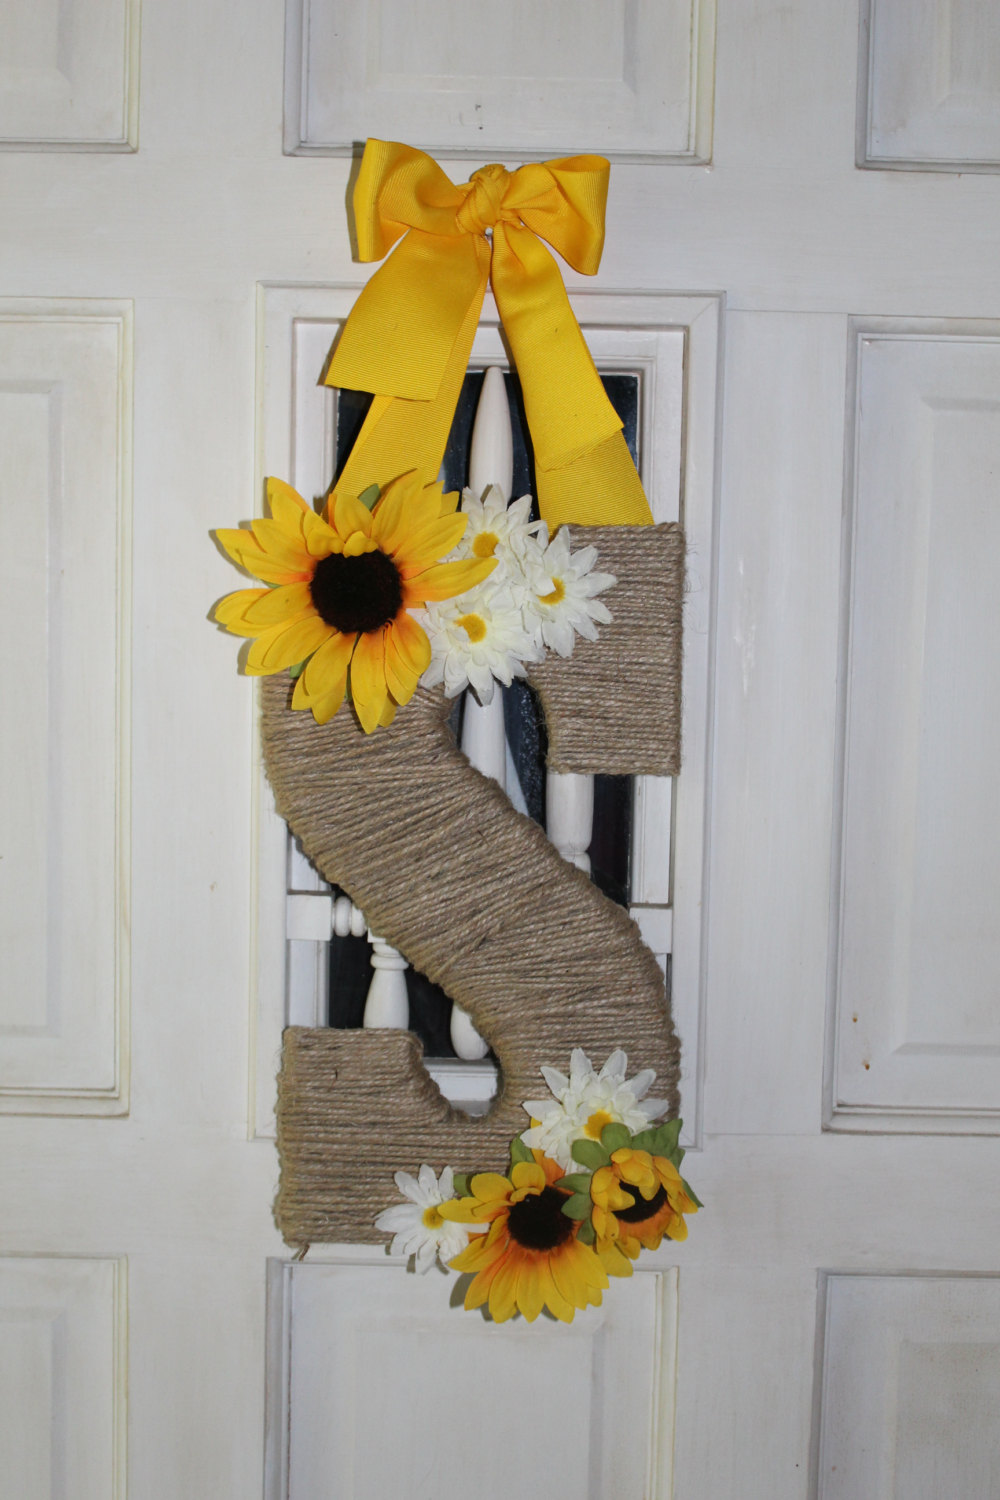 Twine Wrapped Initial Door Hanger Monogram Door Hanger Twine Wrapped Letter Monogram Door Wreath Initial Wreath Sunflower Wreath Sold By Lnp Boutique On Storenvy